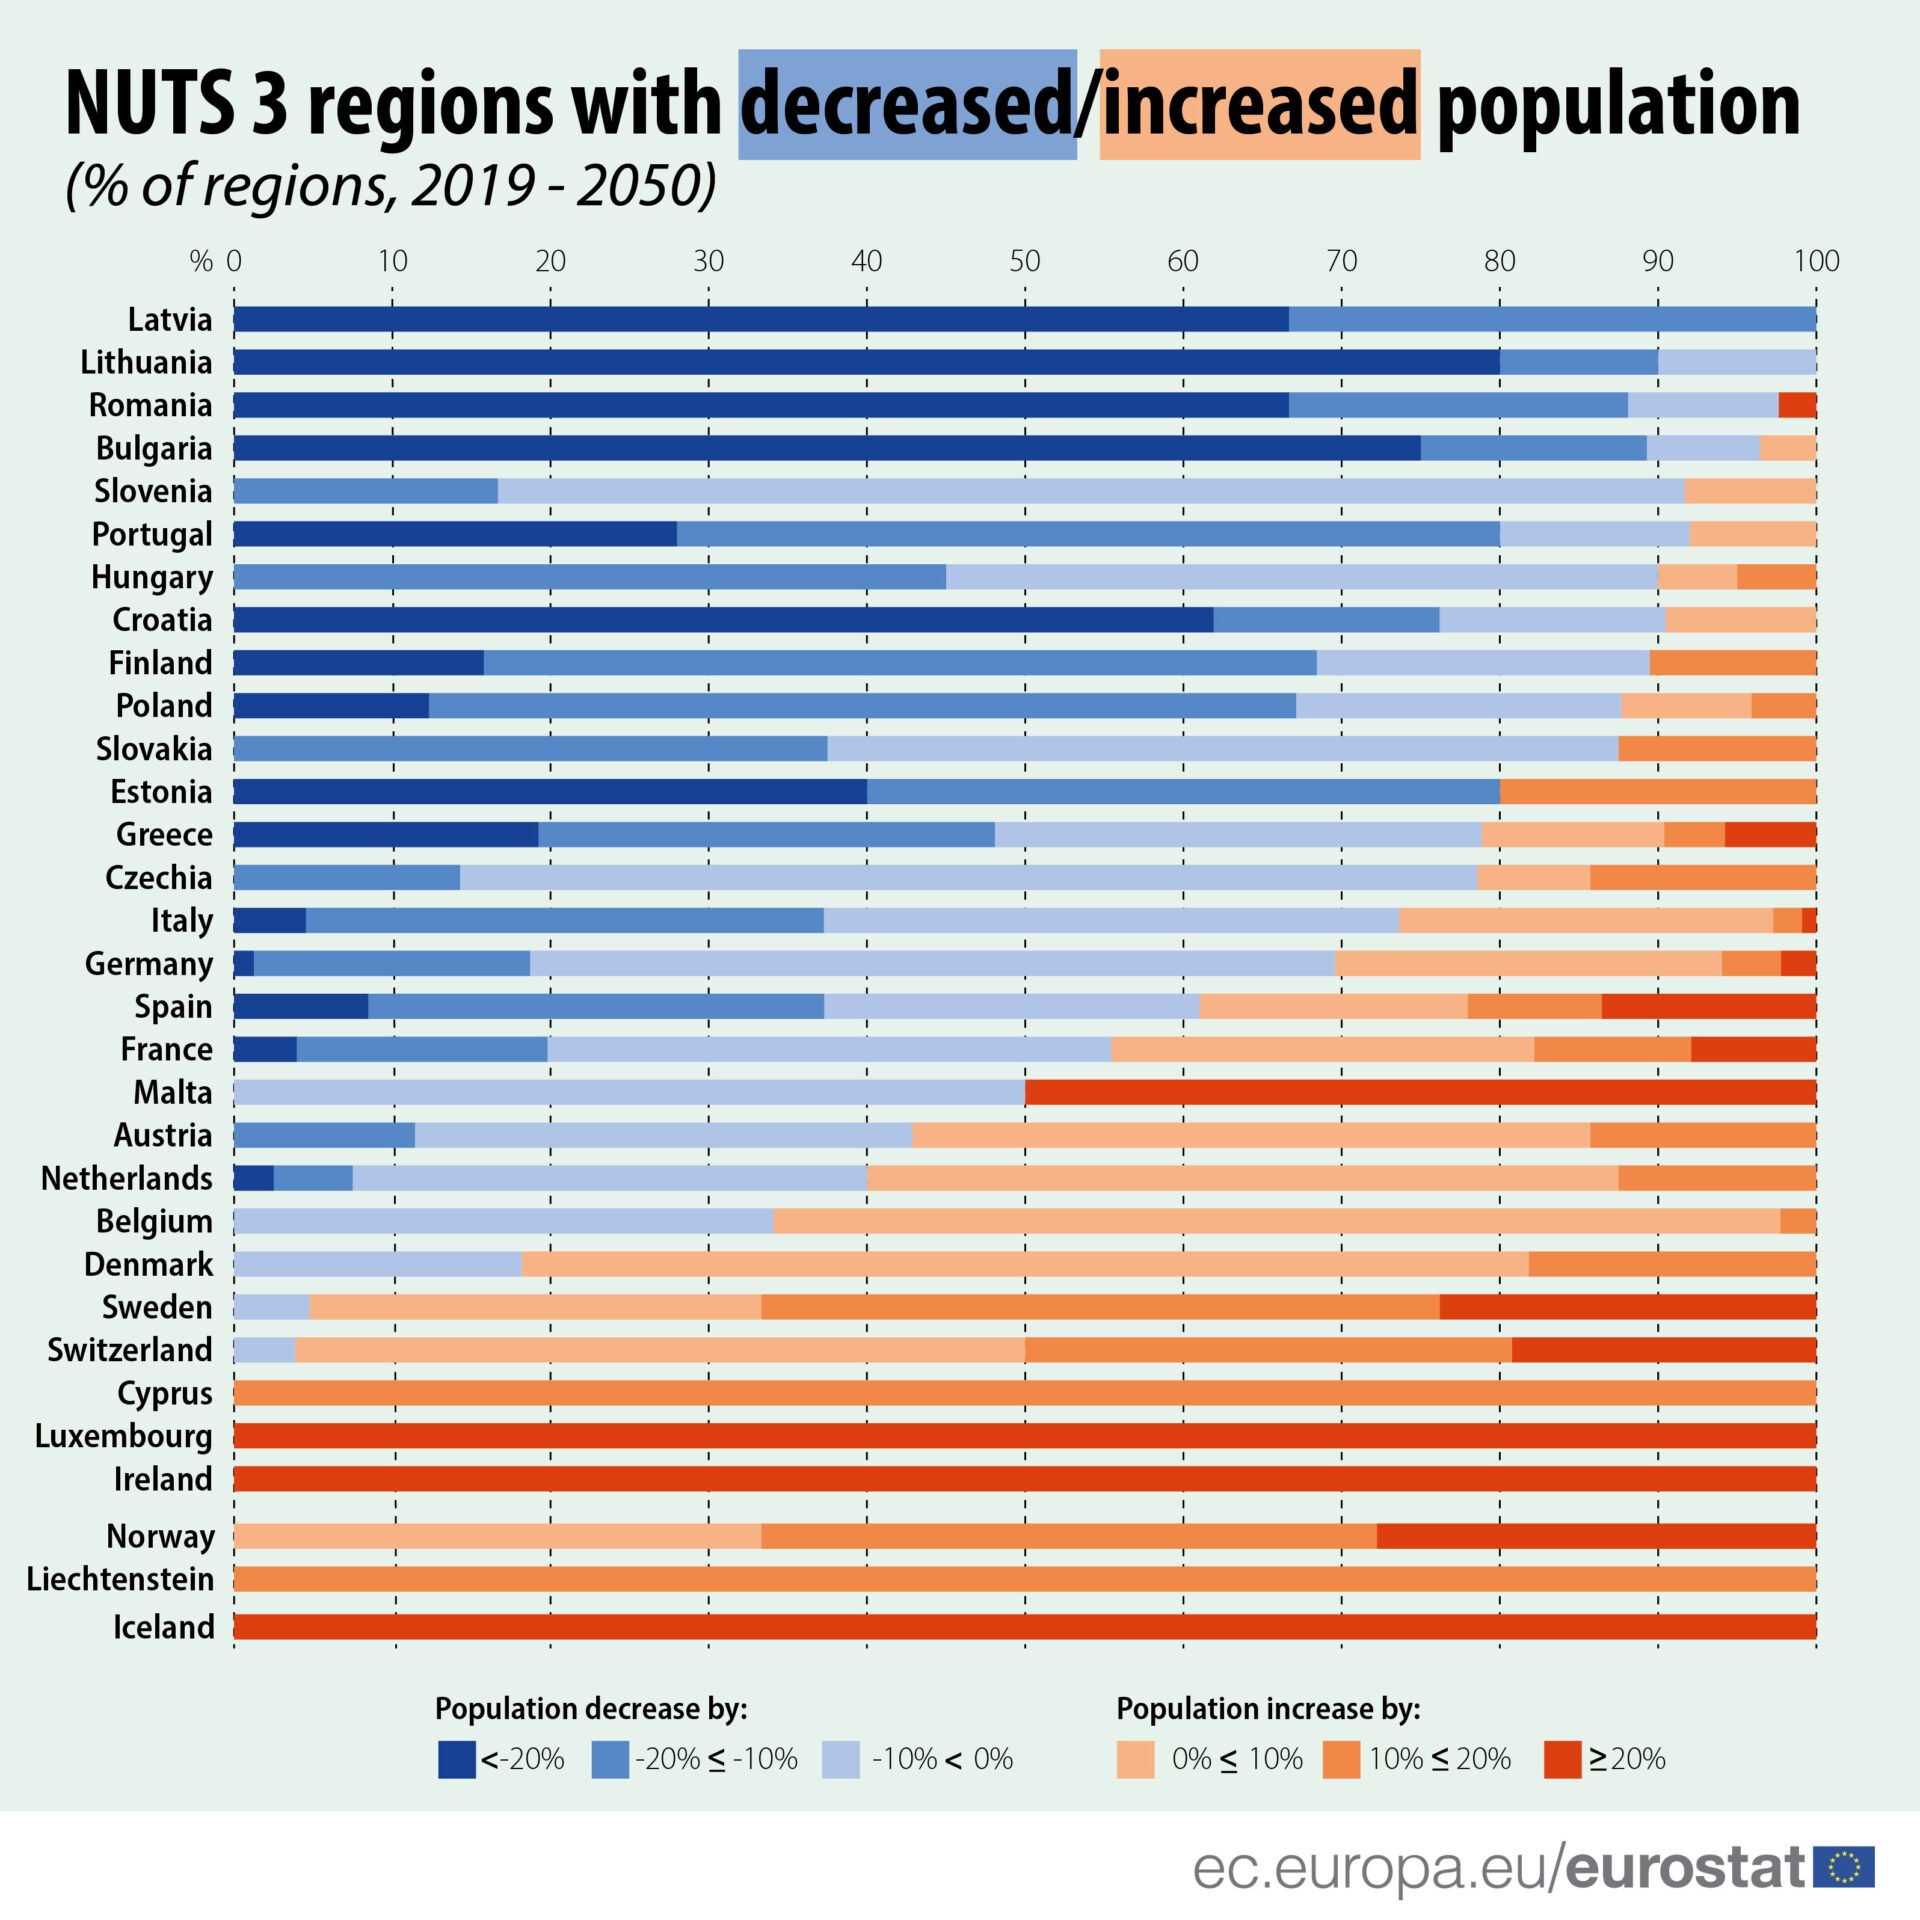 The population of Cyprus will grow 10-20% by 2050